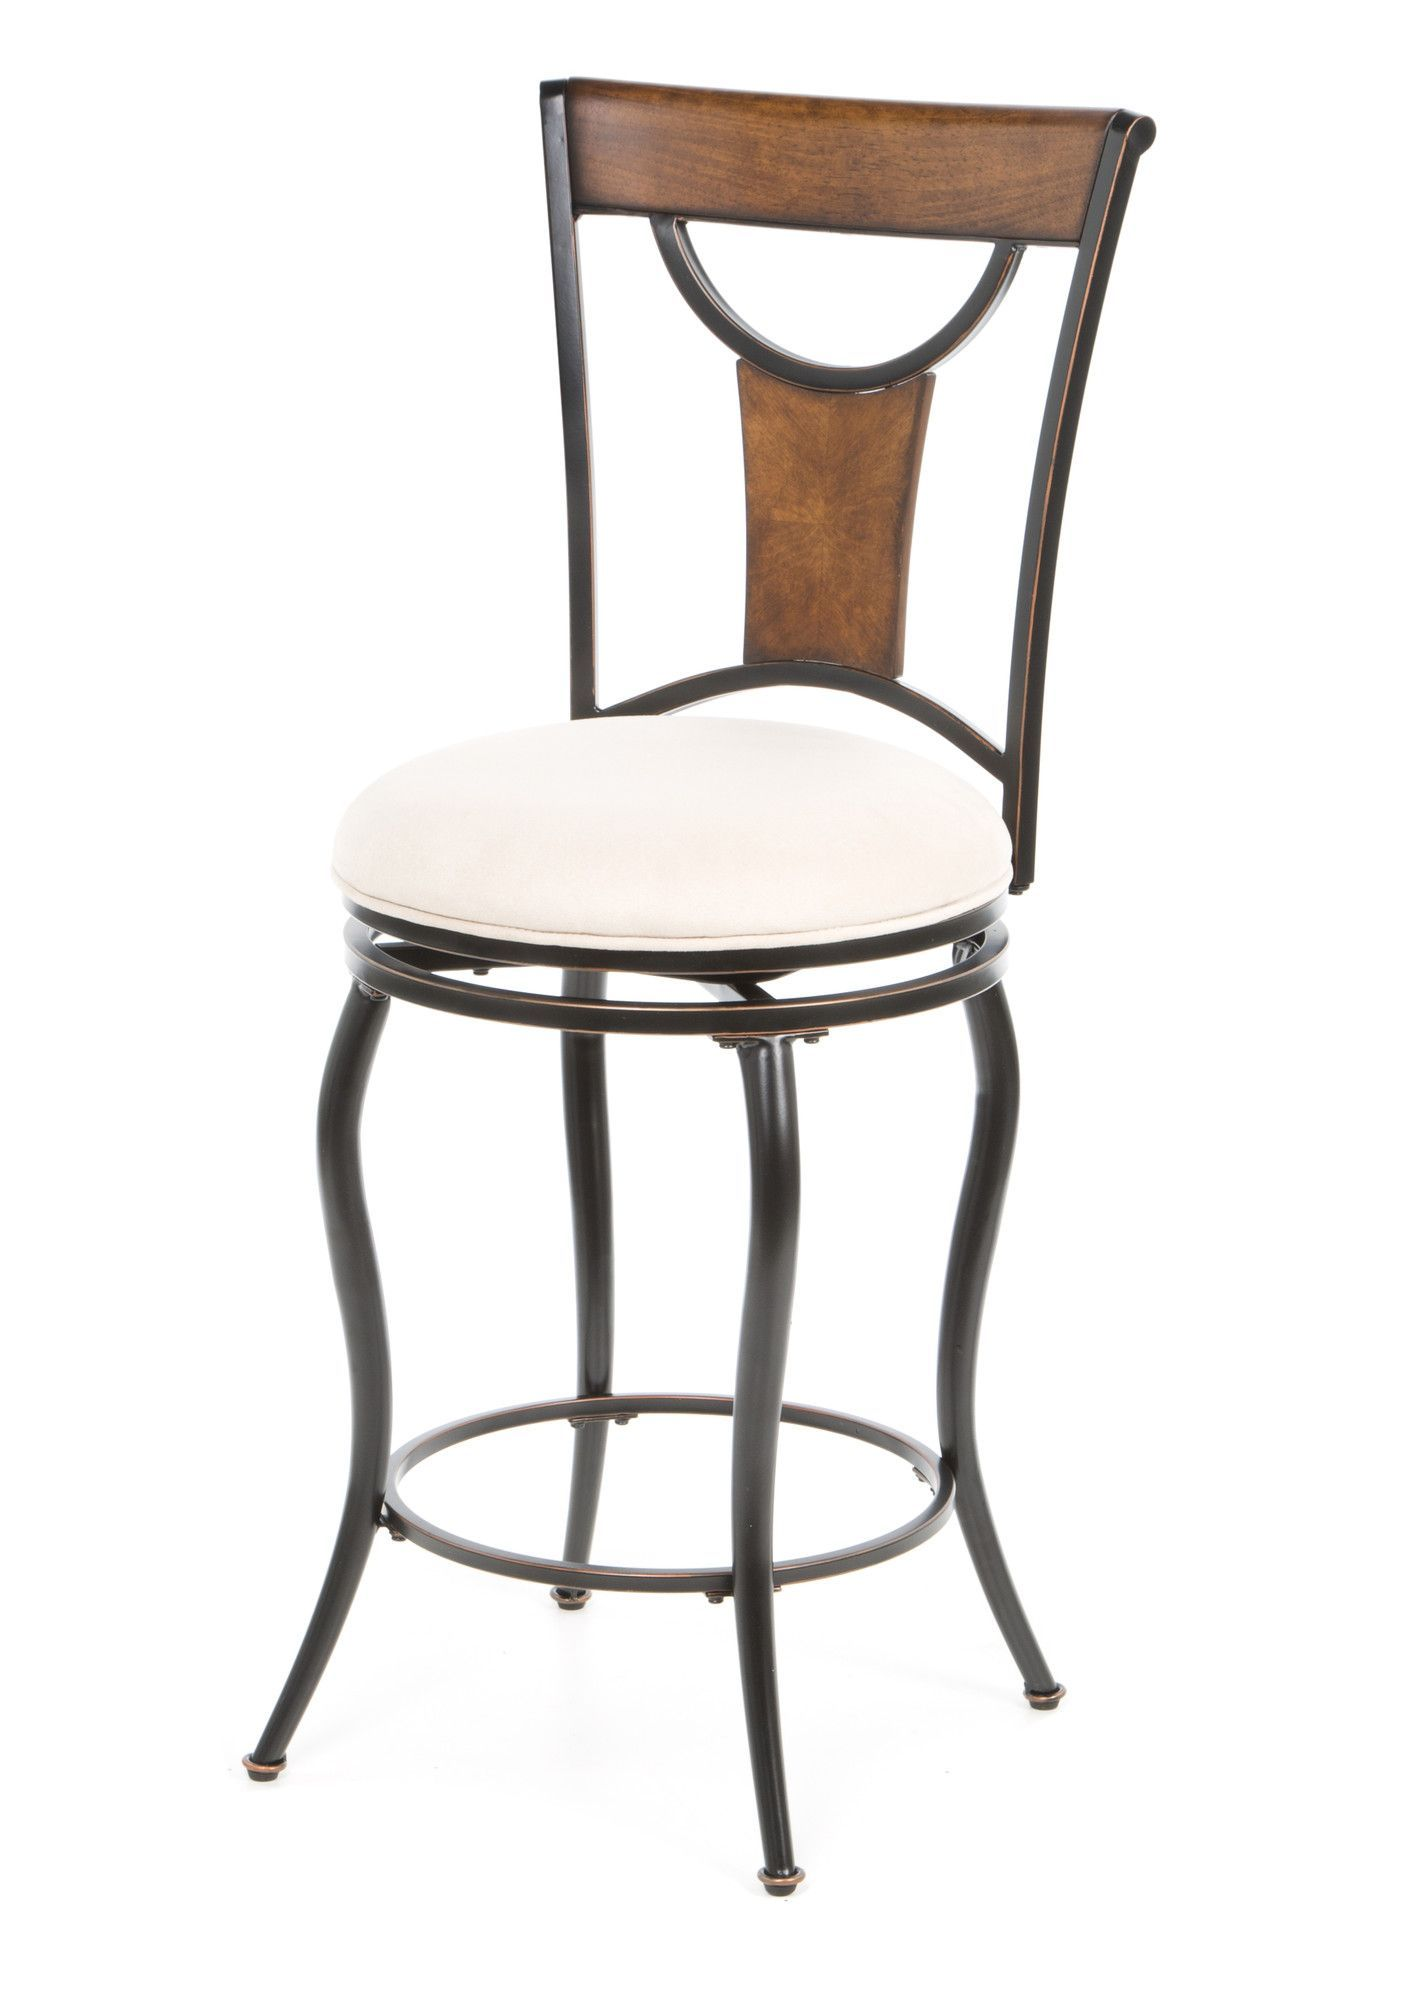 Inspirational 26 Swivel Counter Stool